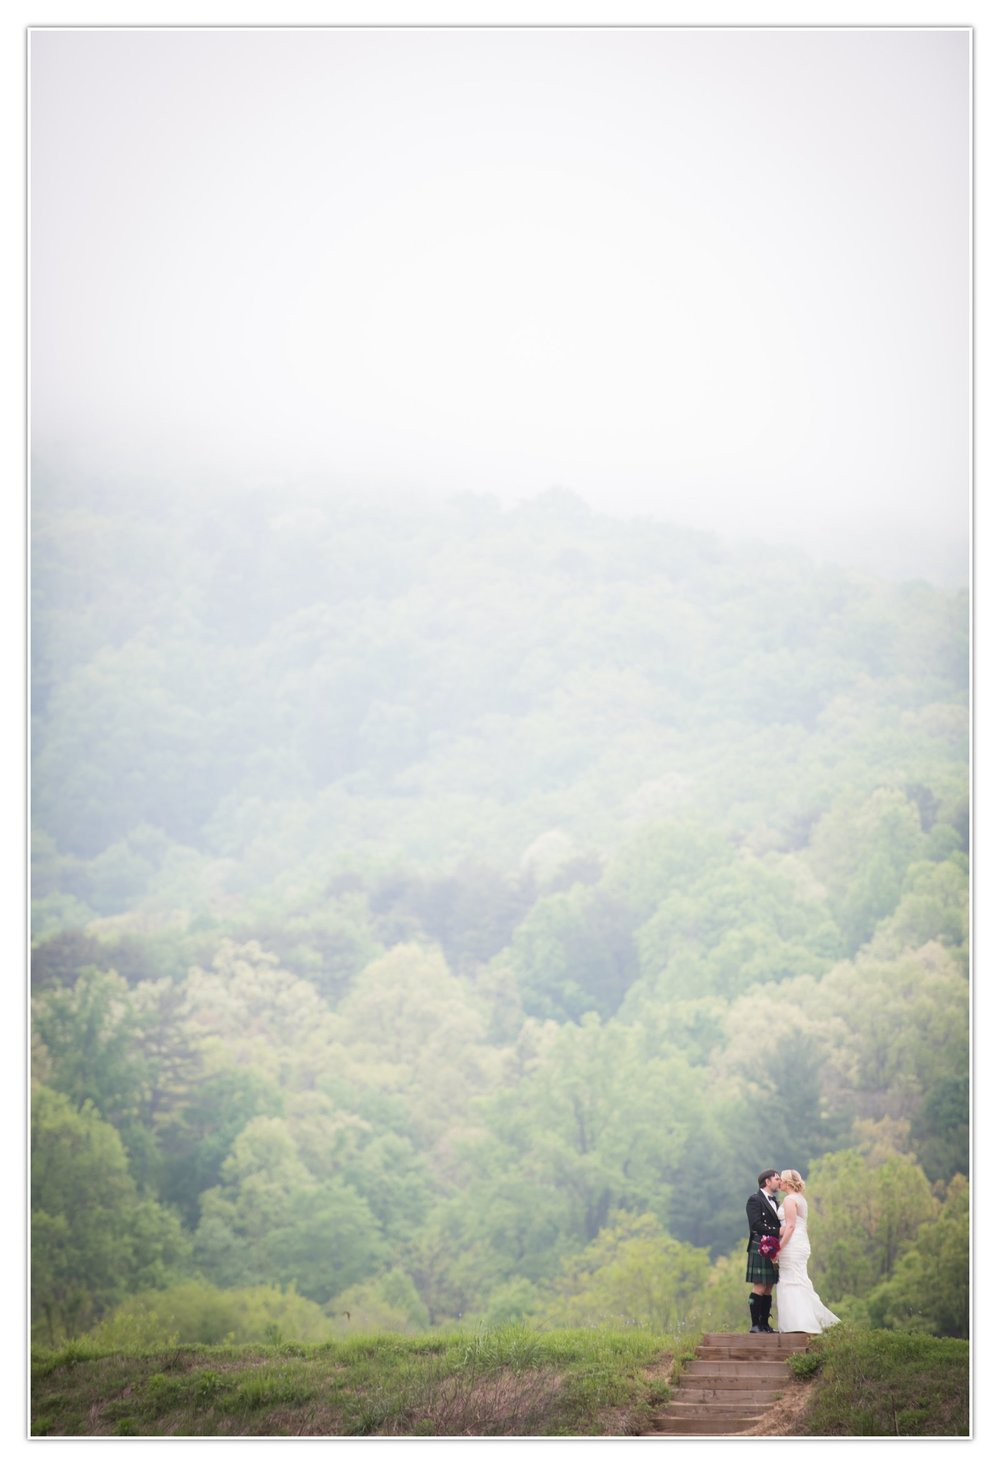 That fog rolling in over the mountains was spectacular. If shooting weddings has taught me one thing, it's to not be afraid of weather. Embrace it...and sometimes, the result is totally worth getting a little bit wet.